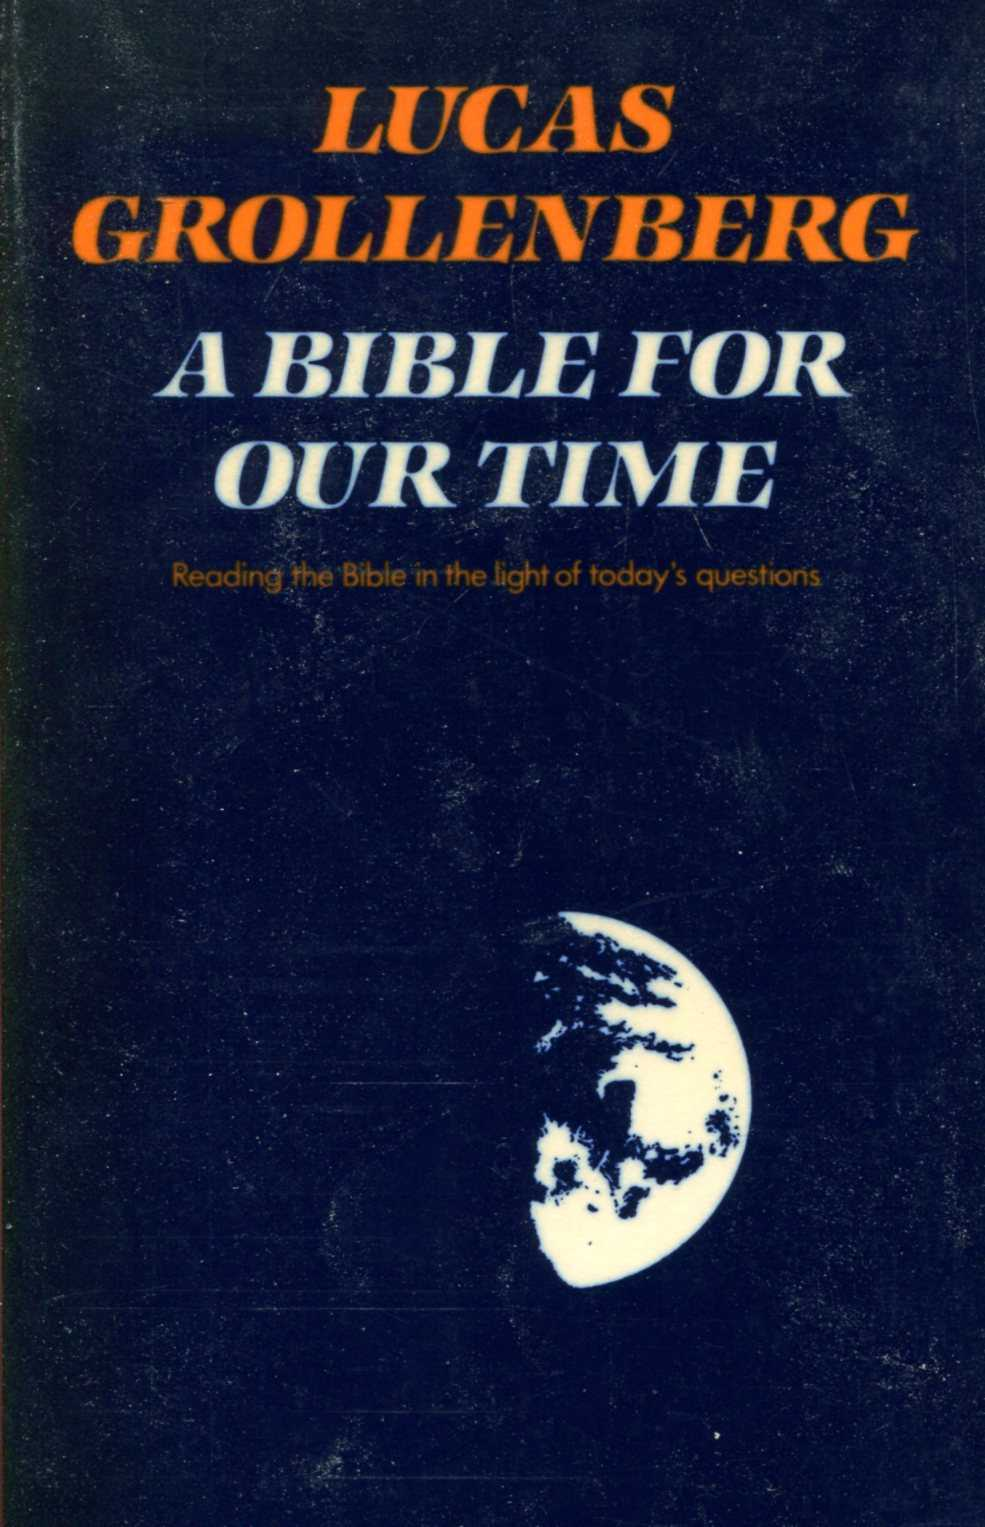 Image for A Bible for Our Time: Reading the Bible in the Light of Today's Questions